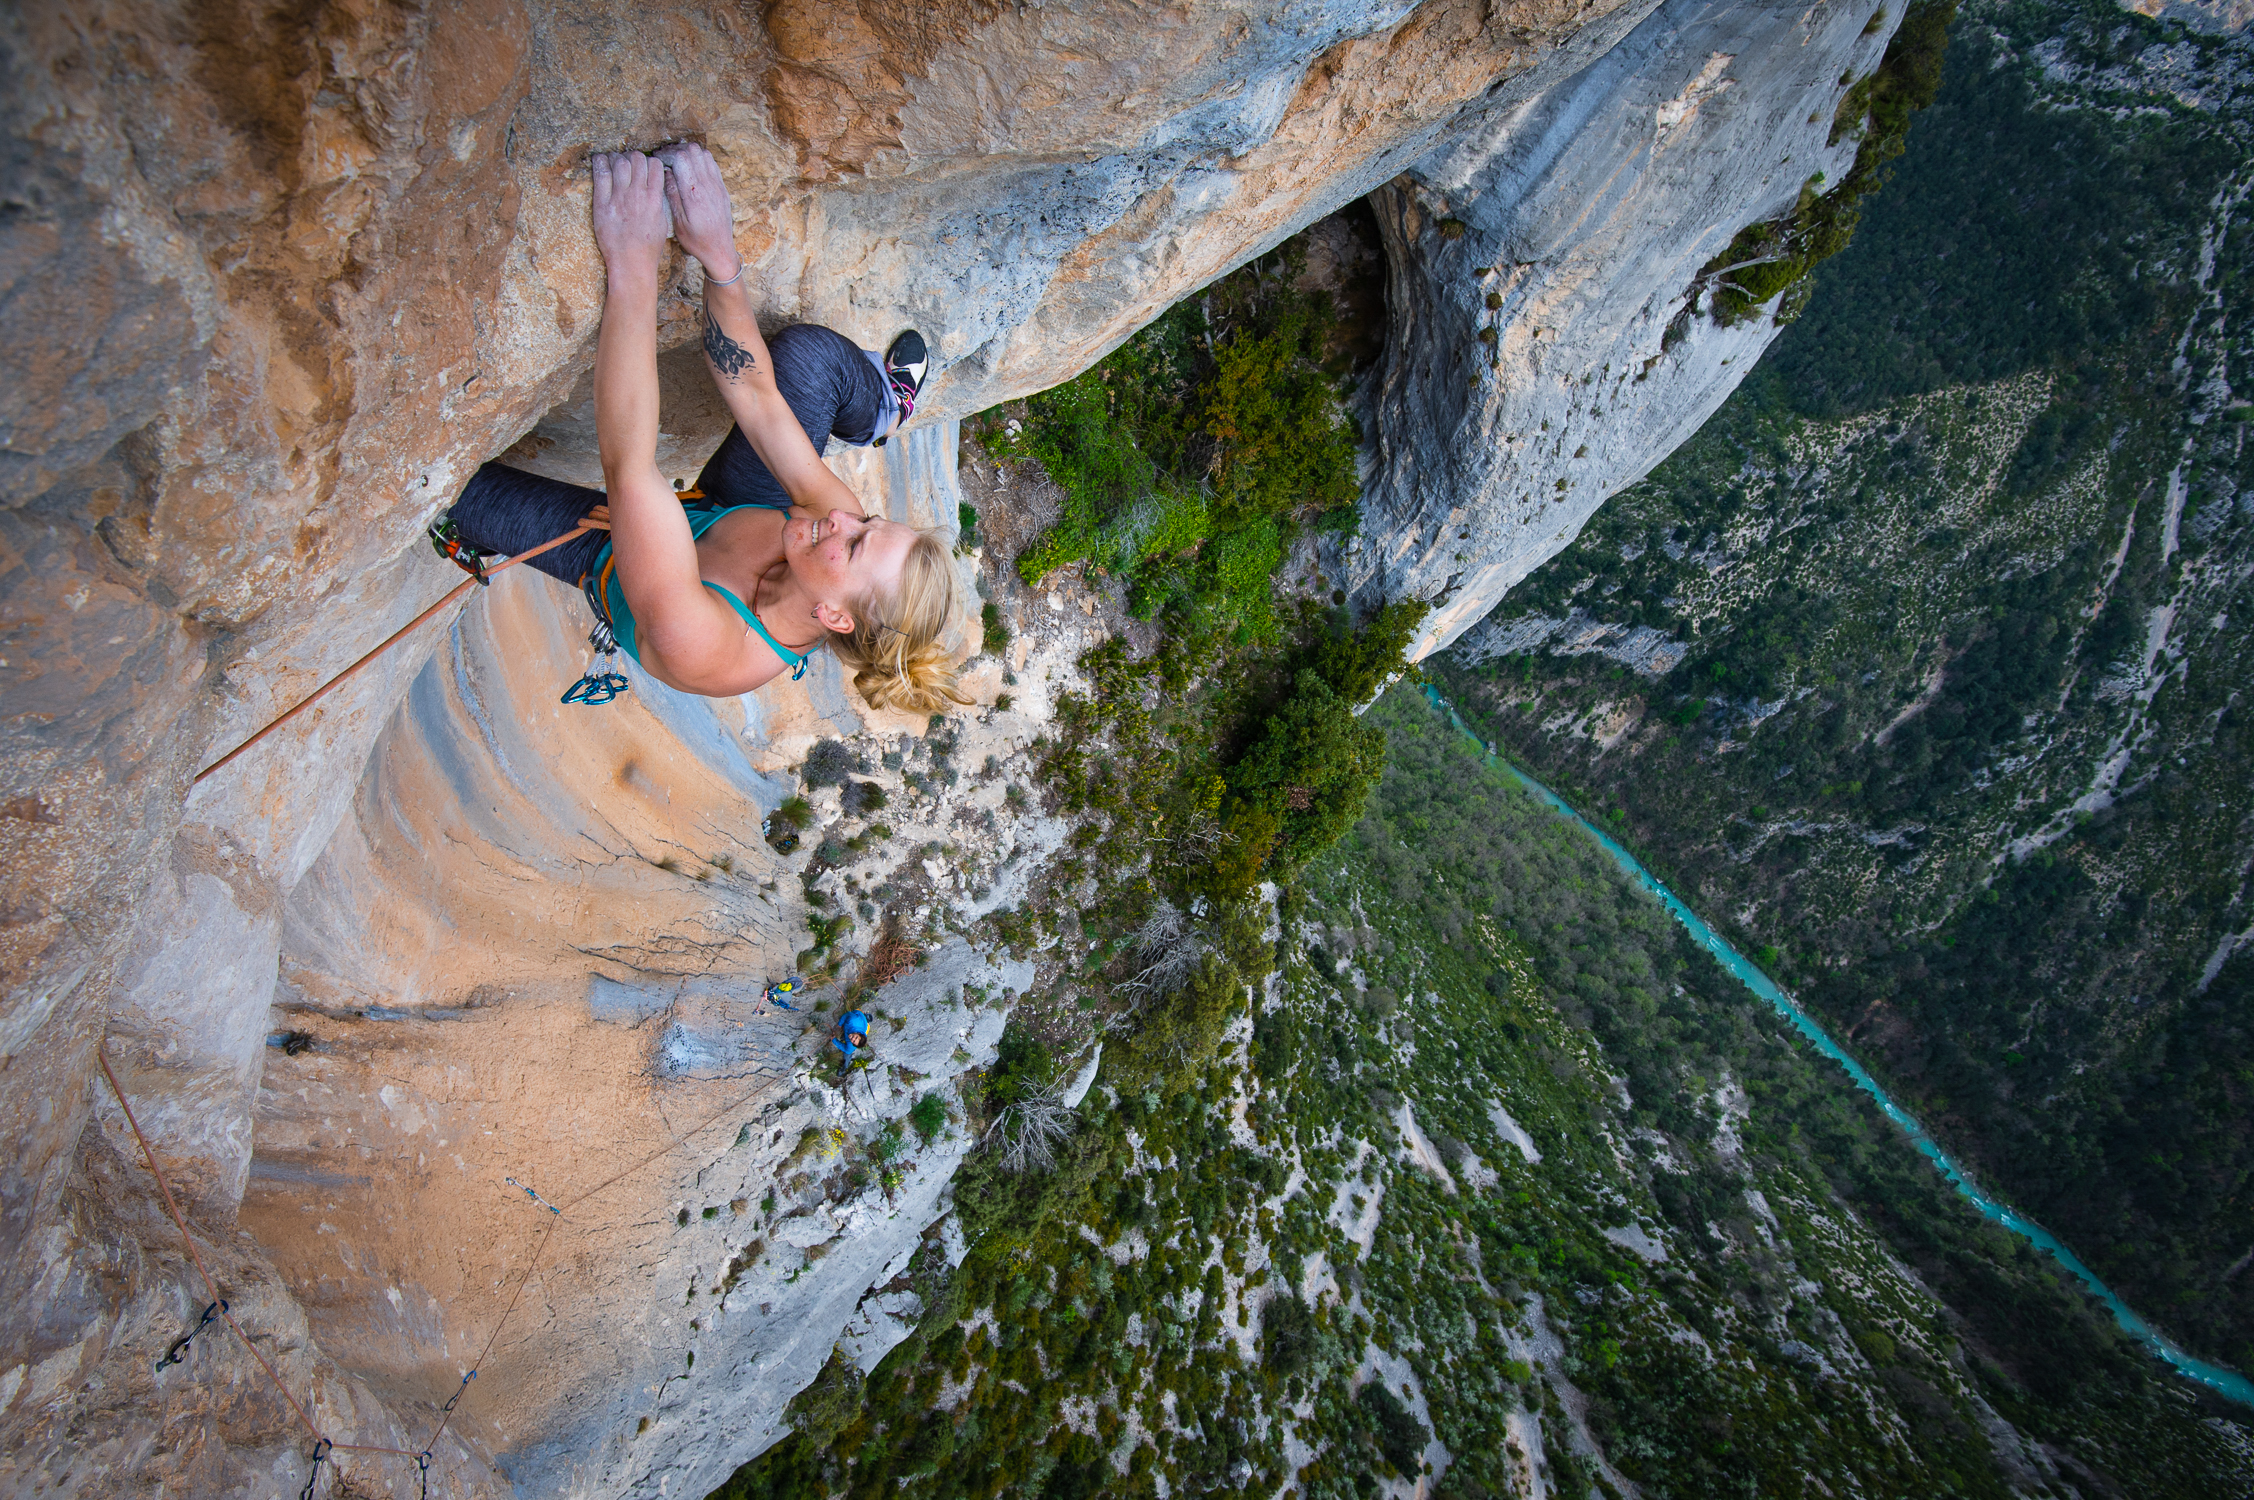 Emily Harrington climbing in the Verdon Gorge. Photo: Keith Ladzinski